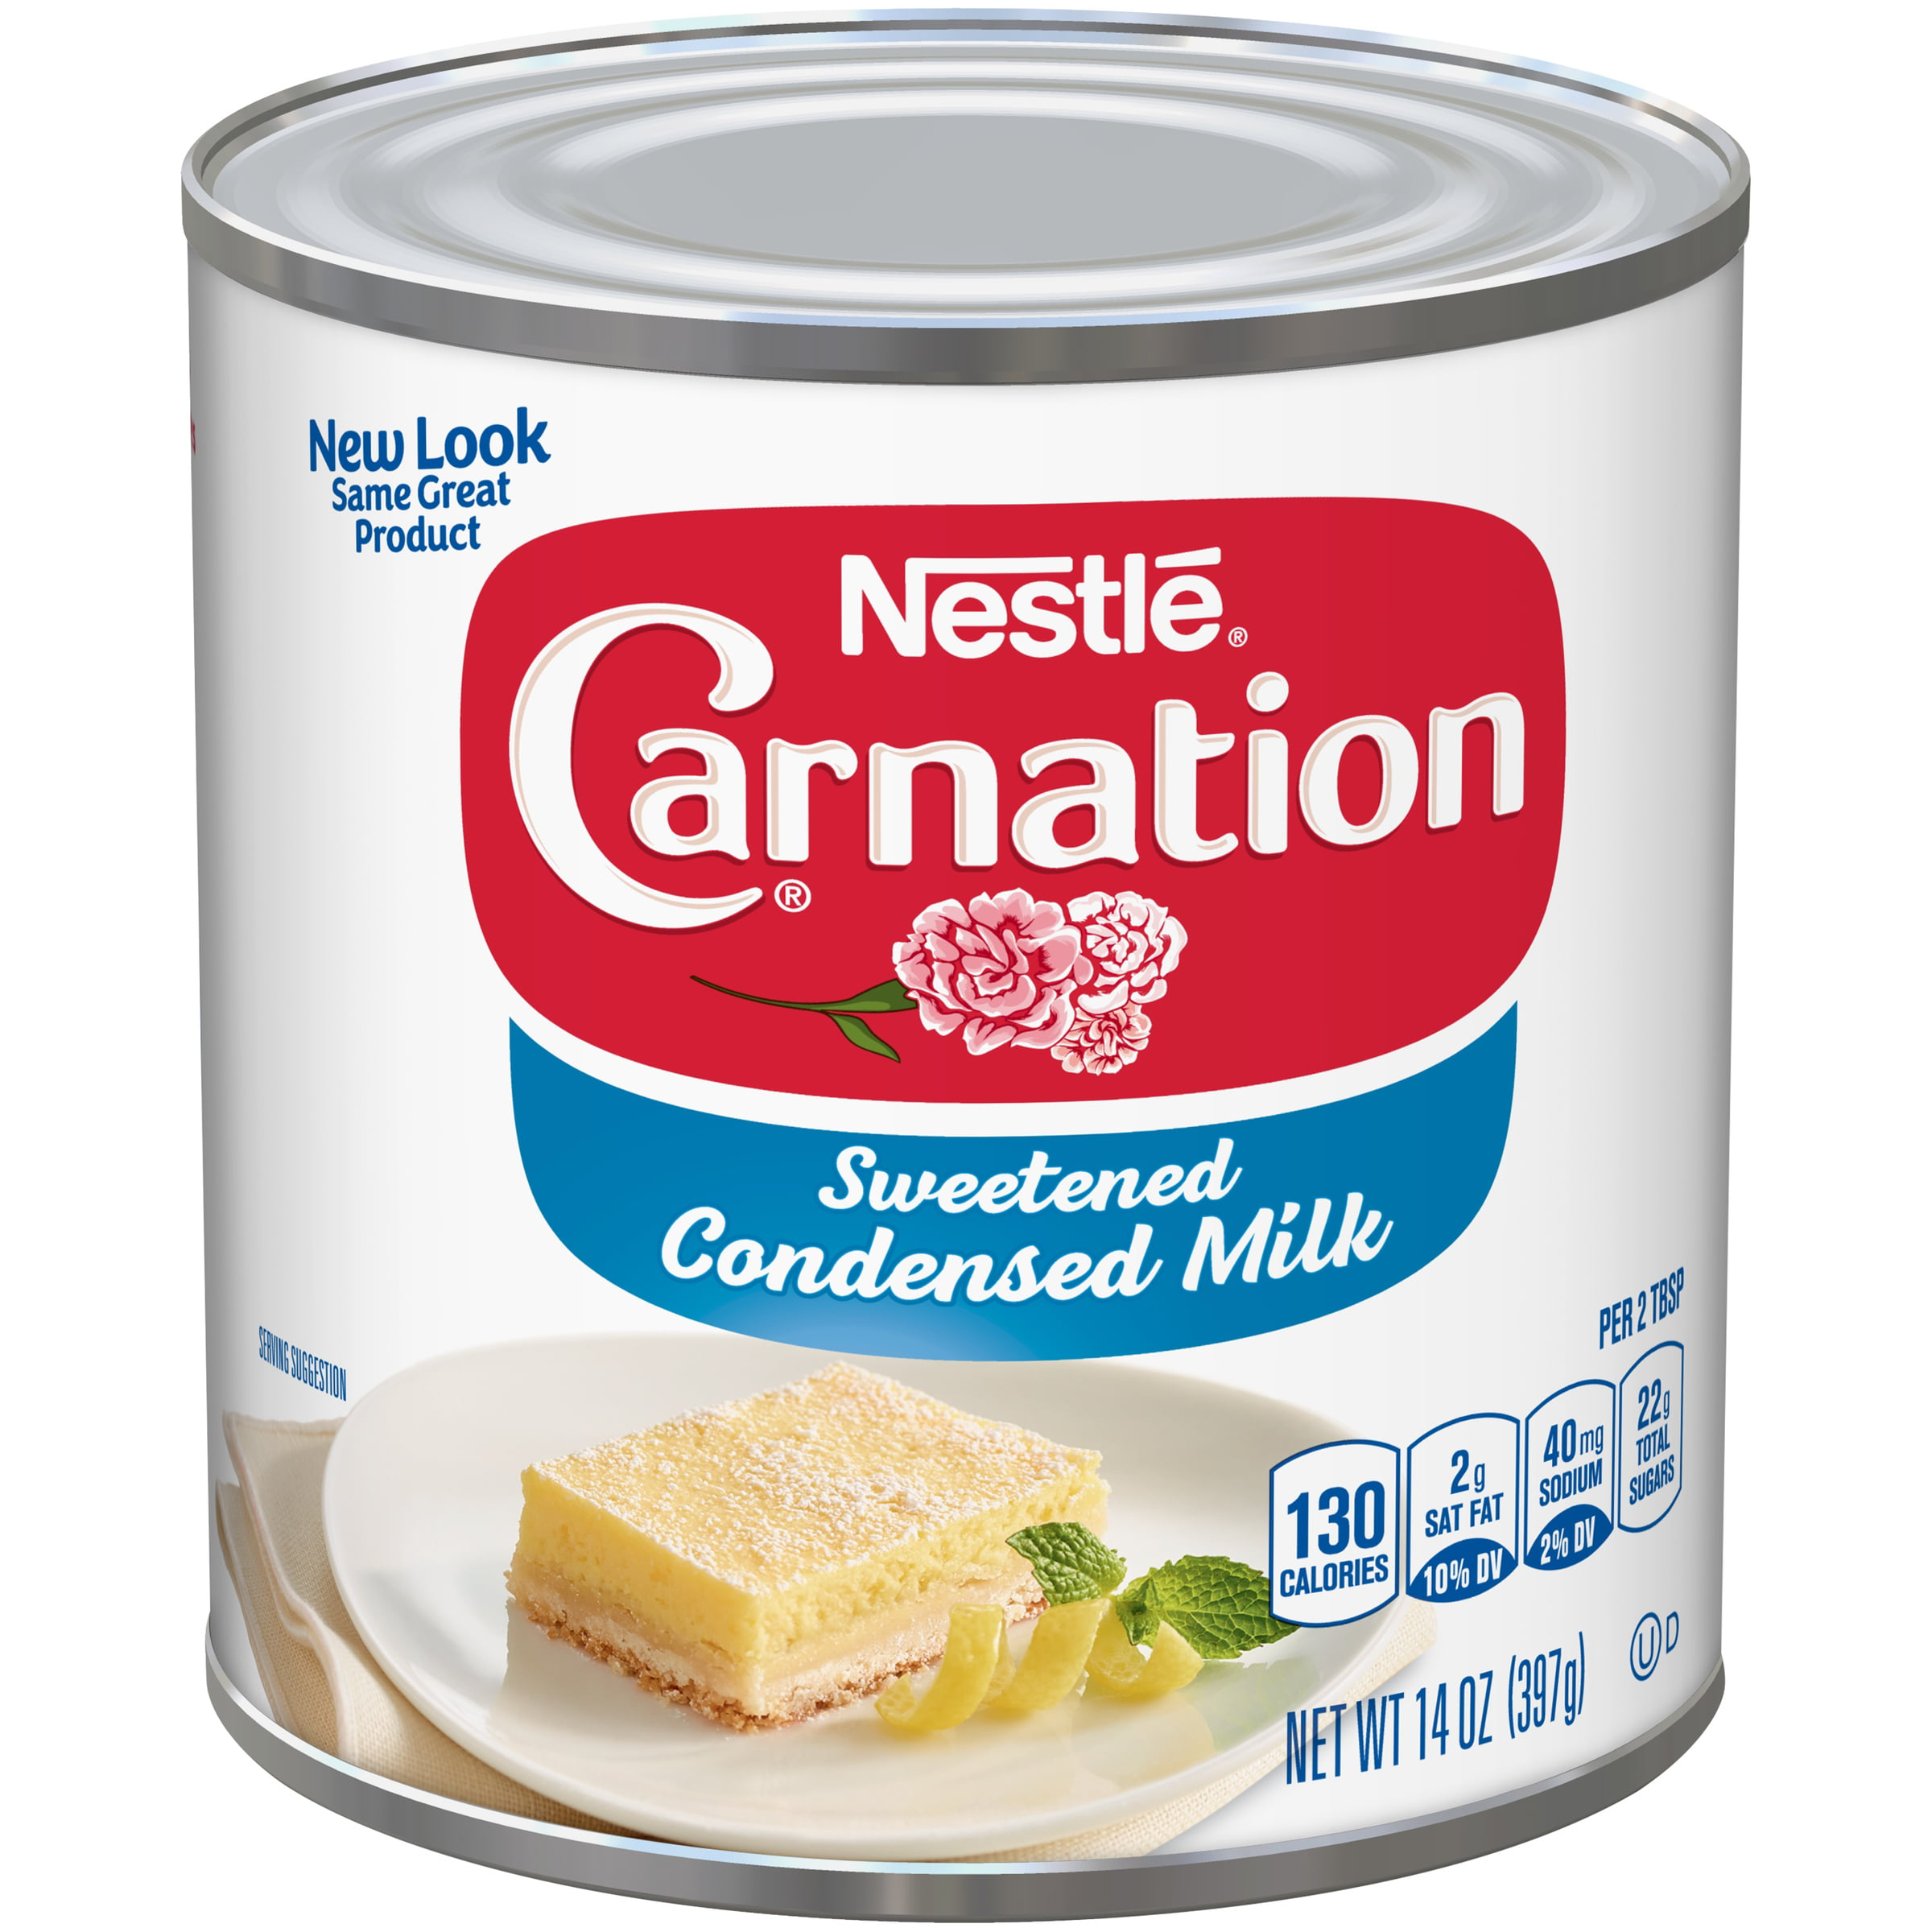 How many grams per can of condensed milk? Classification, benefit and harm of a product 94